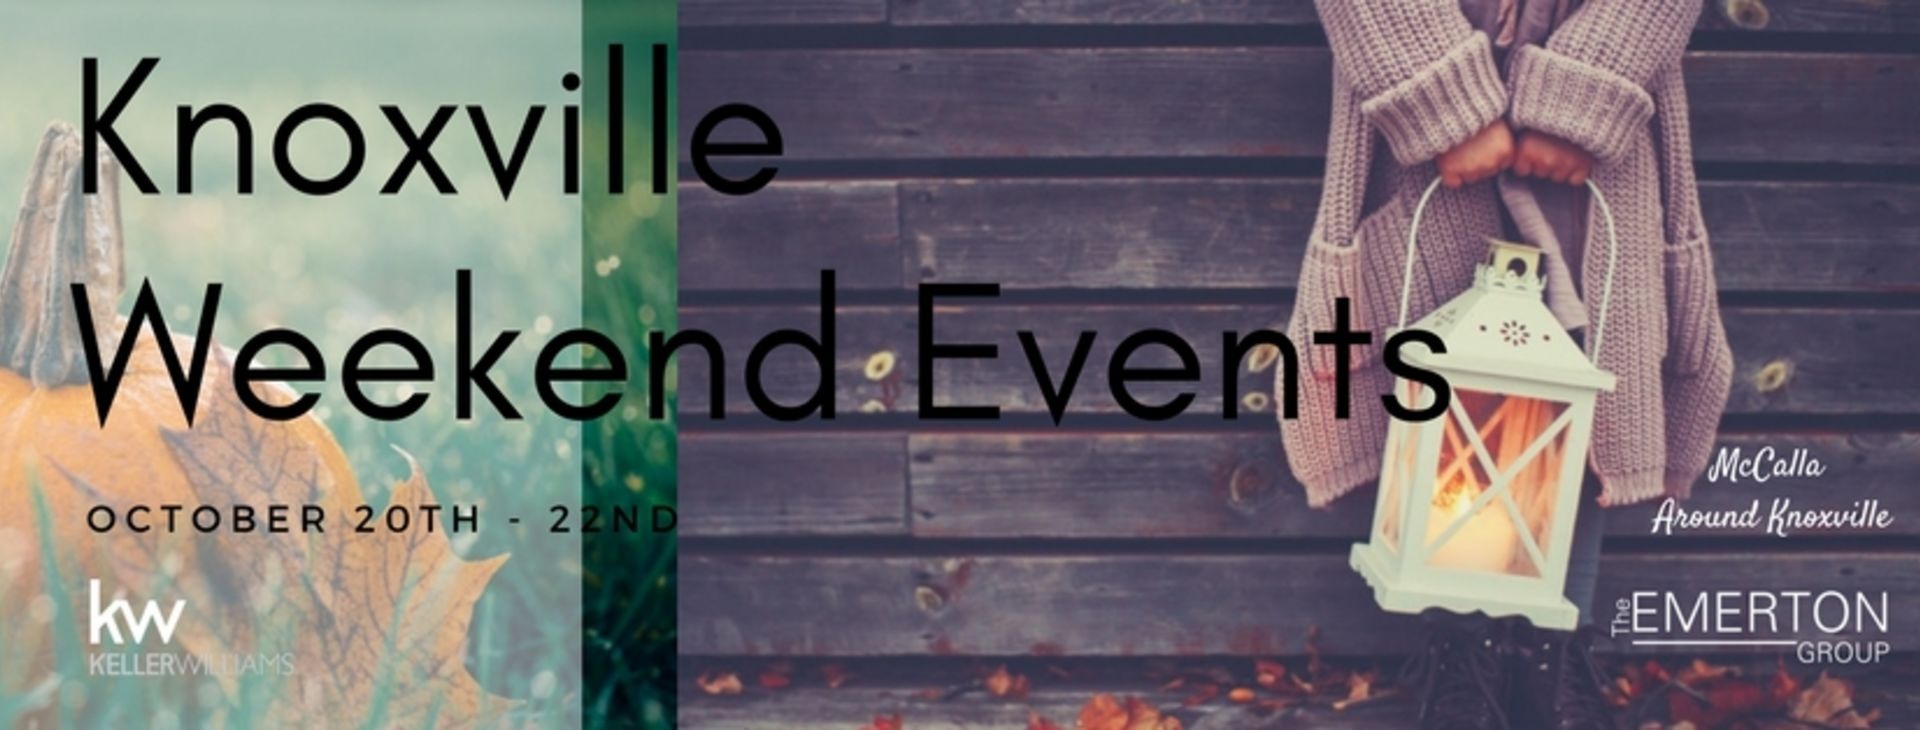 Weekend Events October 20th -22nd